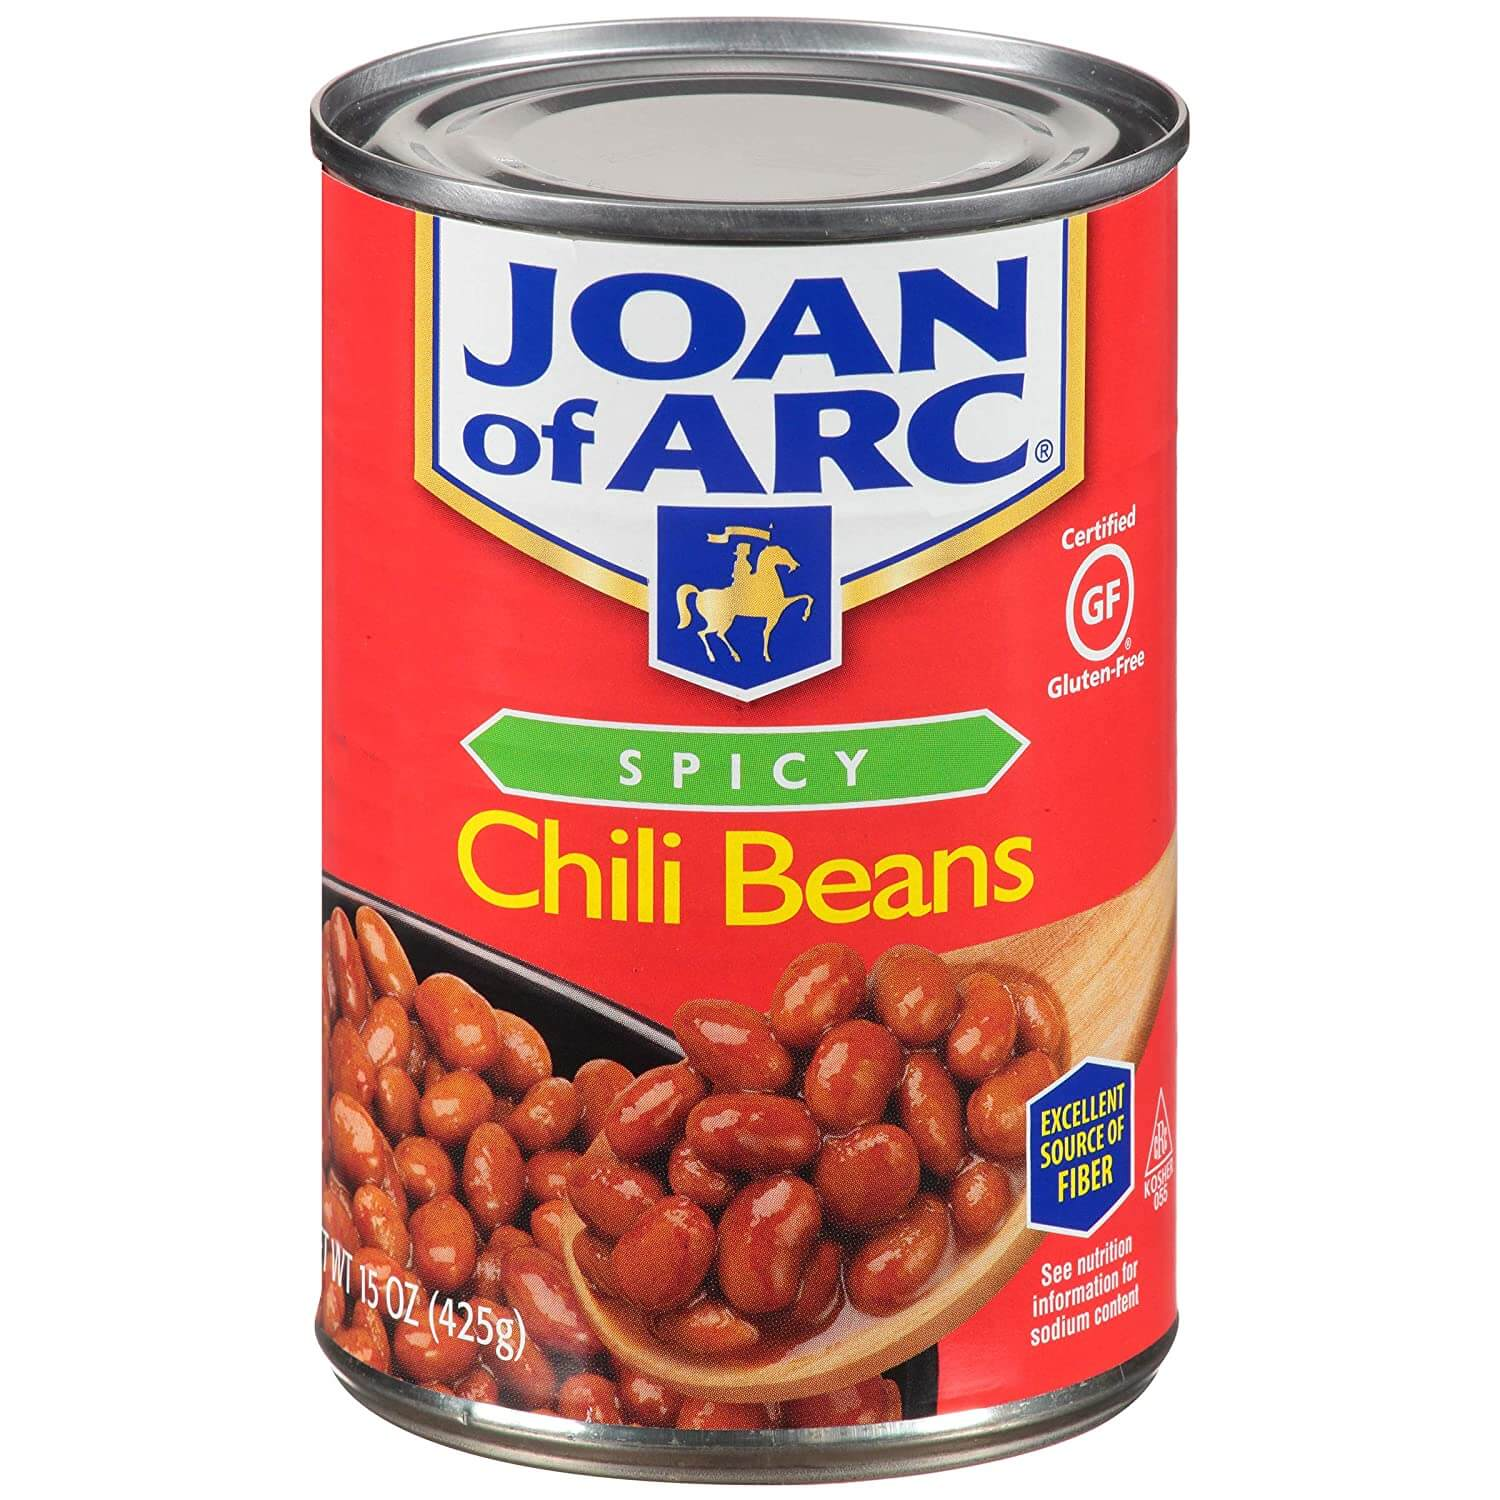 Joan of Arc Spicy Chili Beans